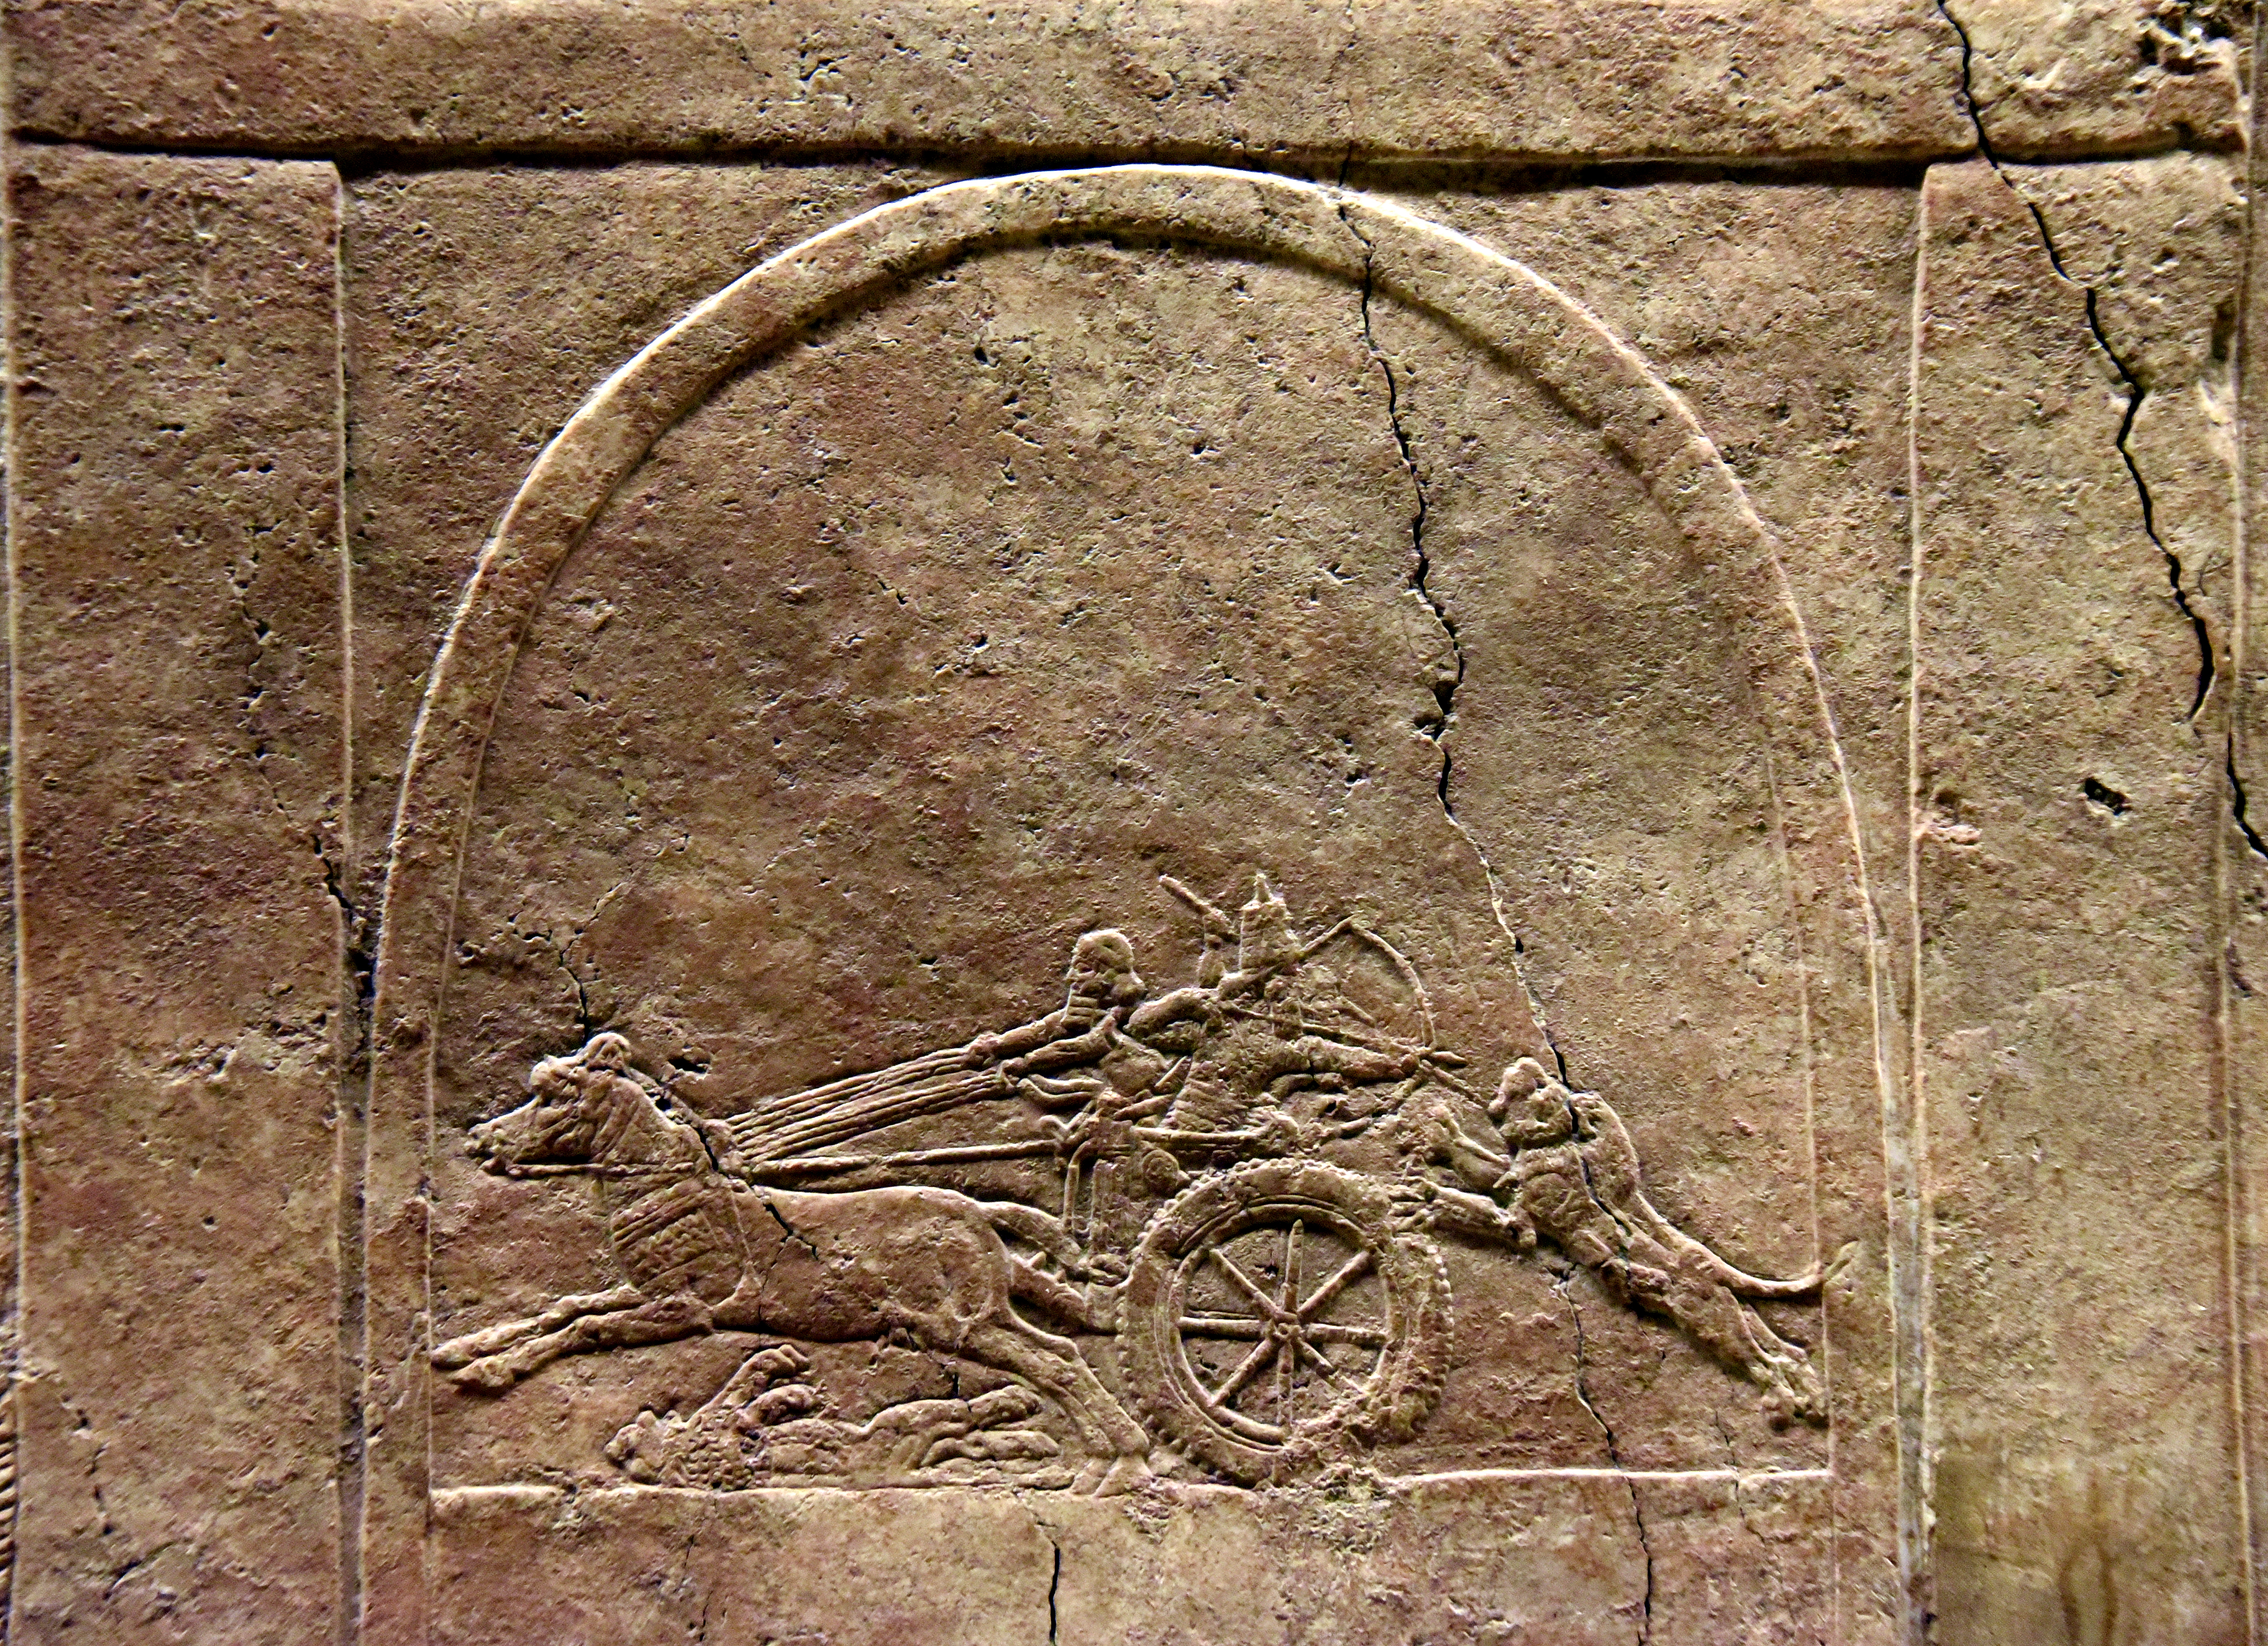 https://upload.wikimedia.org/wikipedia/commons/3/38/Detail,_depiction_of_a_stele_or_a_monument_of_lion-hunting_on_a_large_lion-hunt_gypsum_wall_slab._From_Ninevah,_Iraq._8th_century_BCE._British_Musuem.jpg